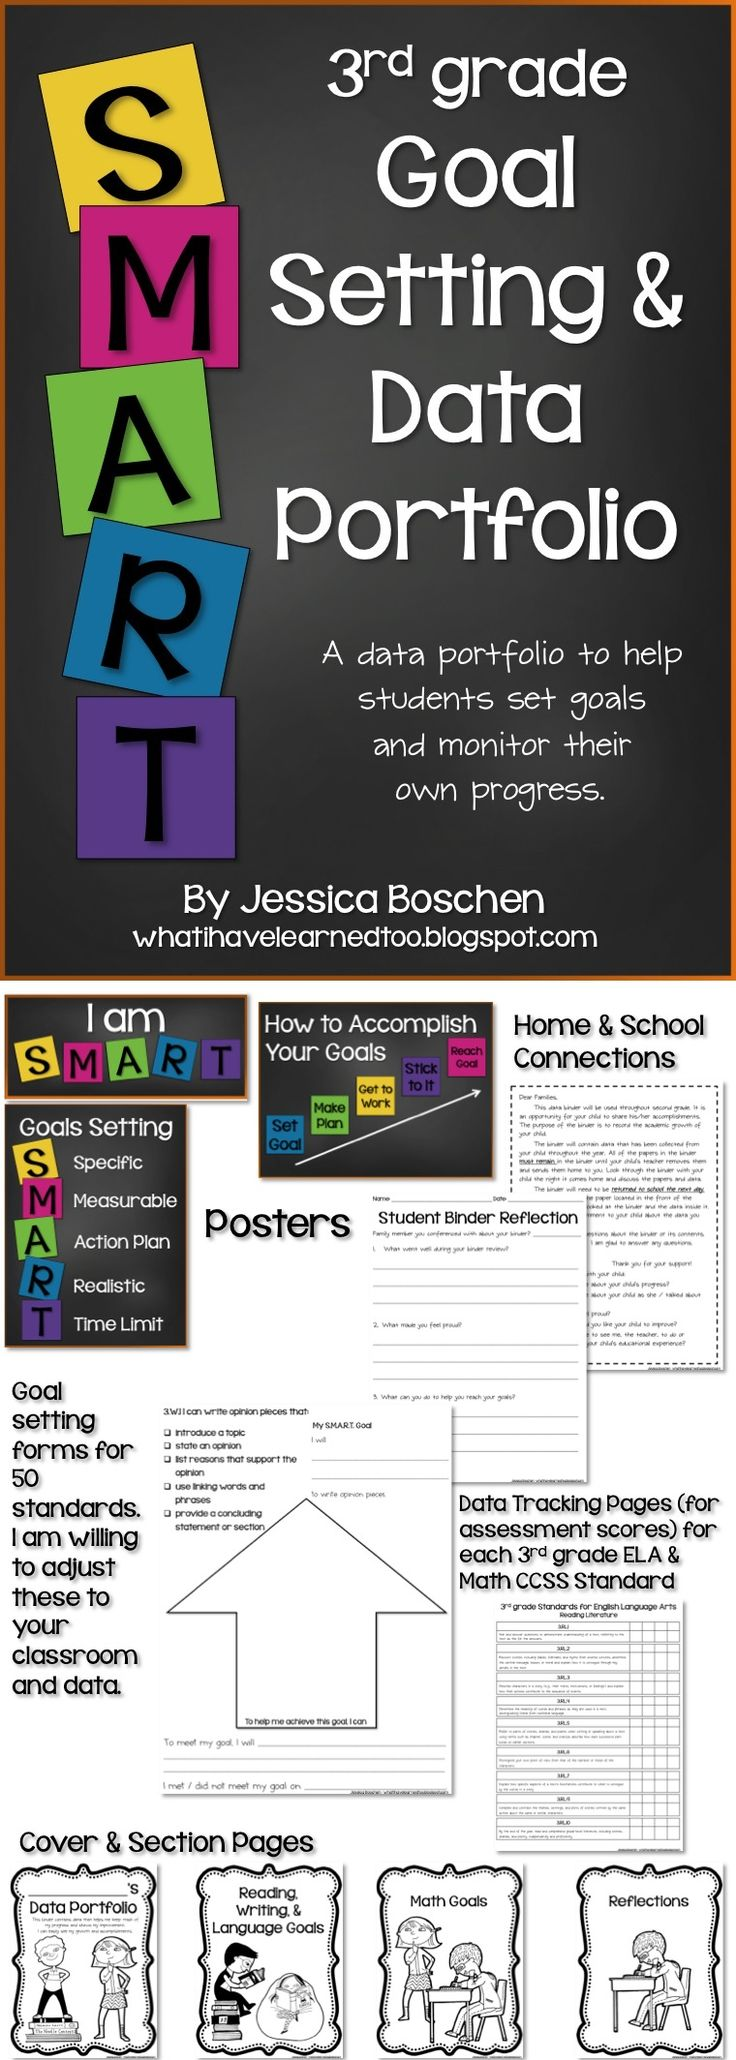 3rd grade Goal Setting & Data Portfolio ($9.50) Also available for other grades on Teachers Pay Teachers